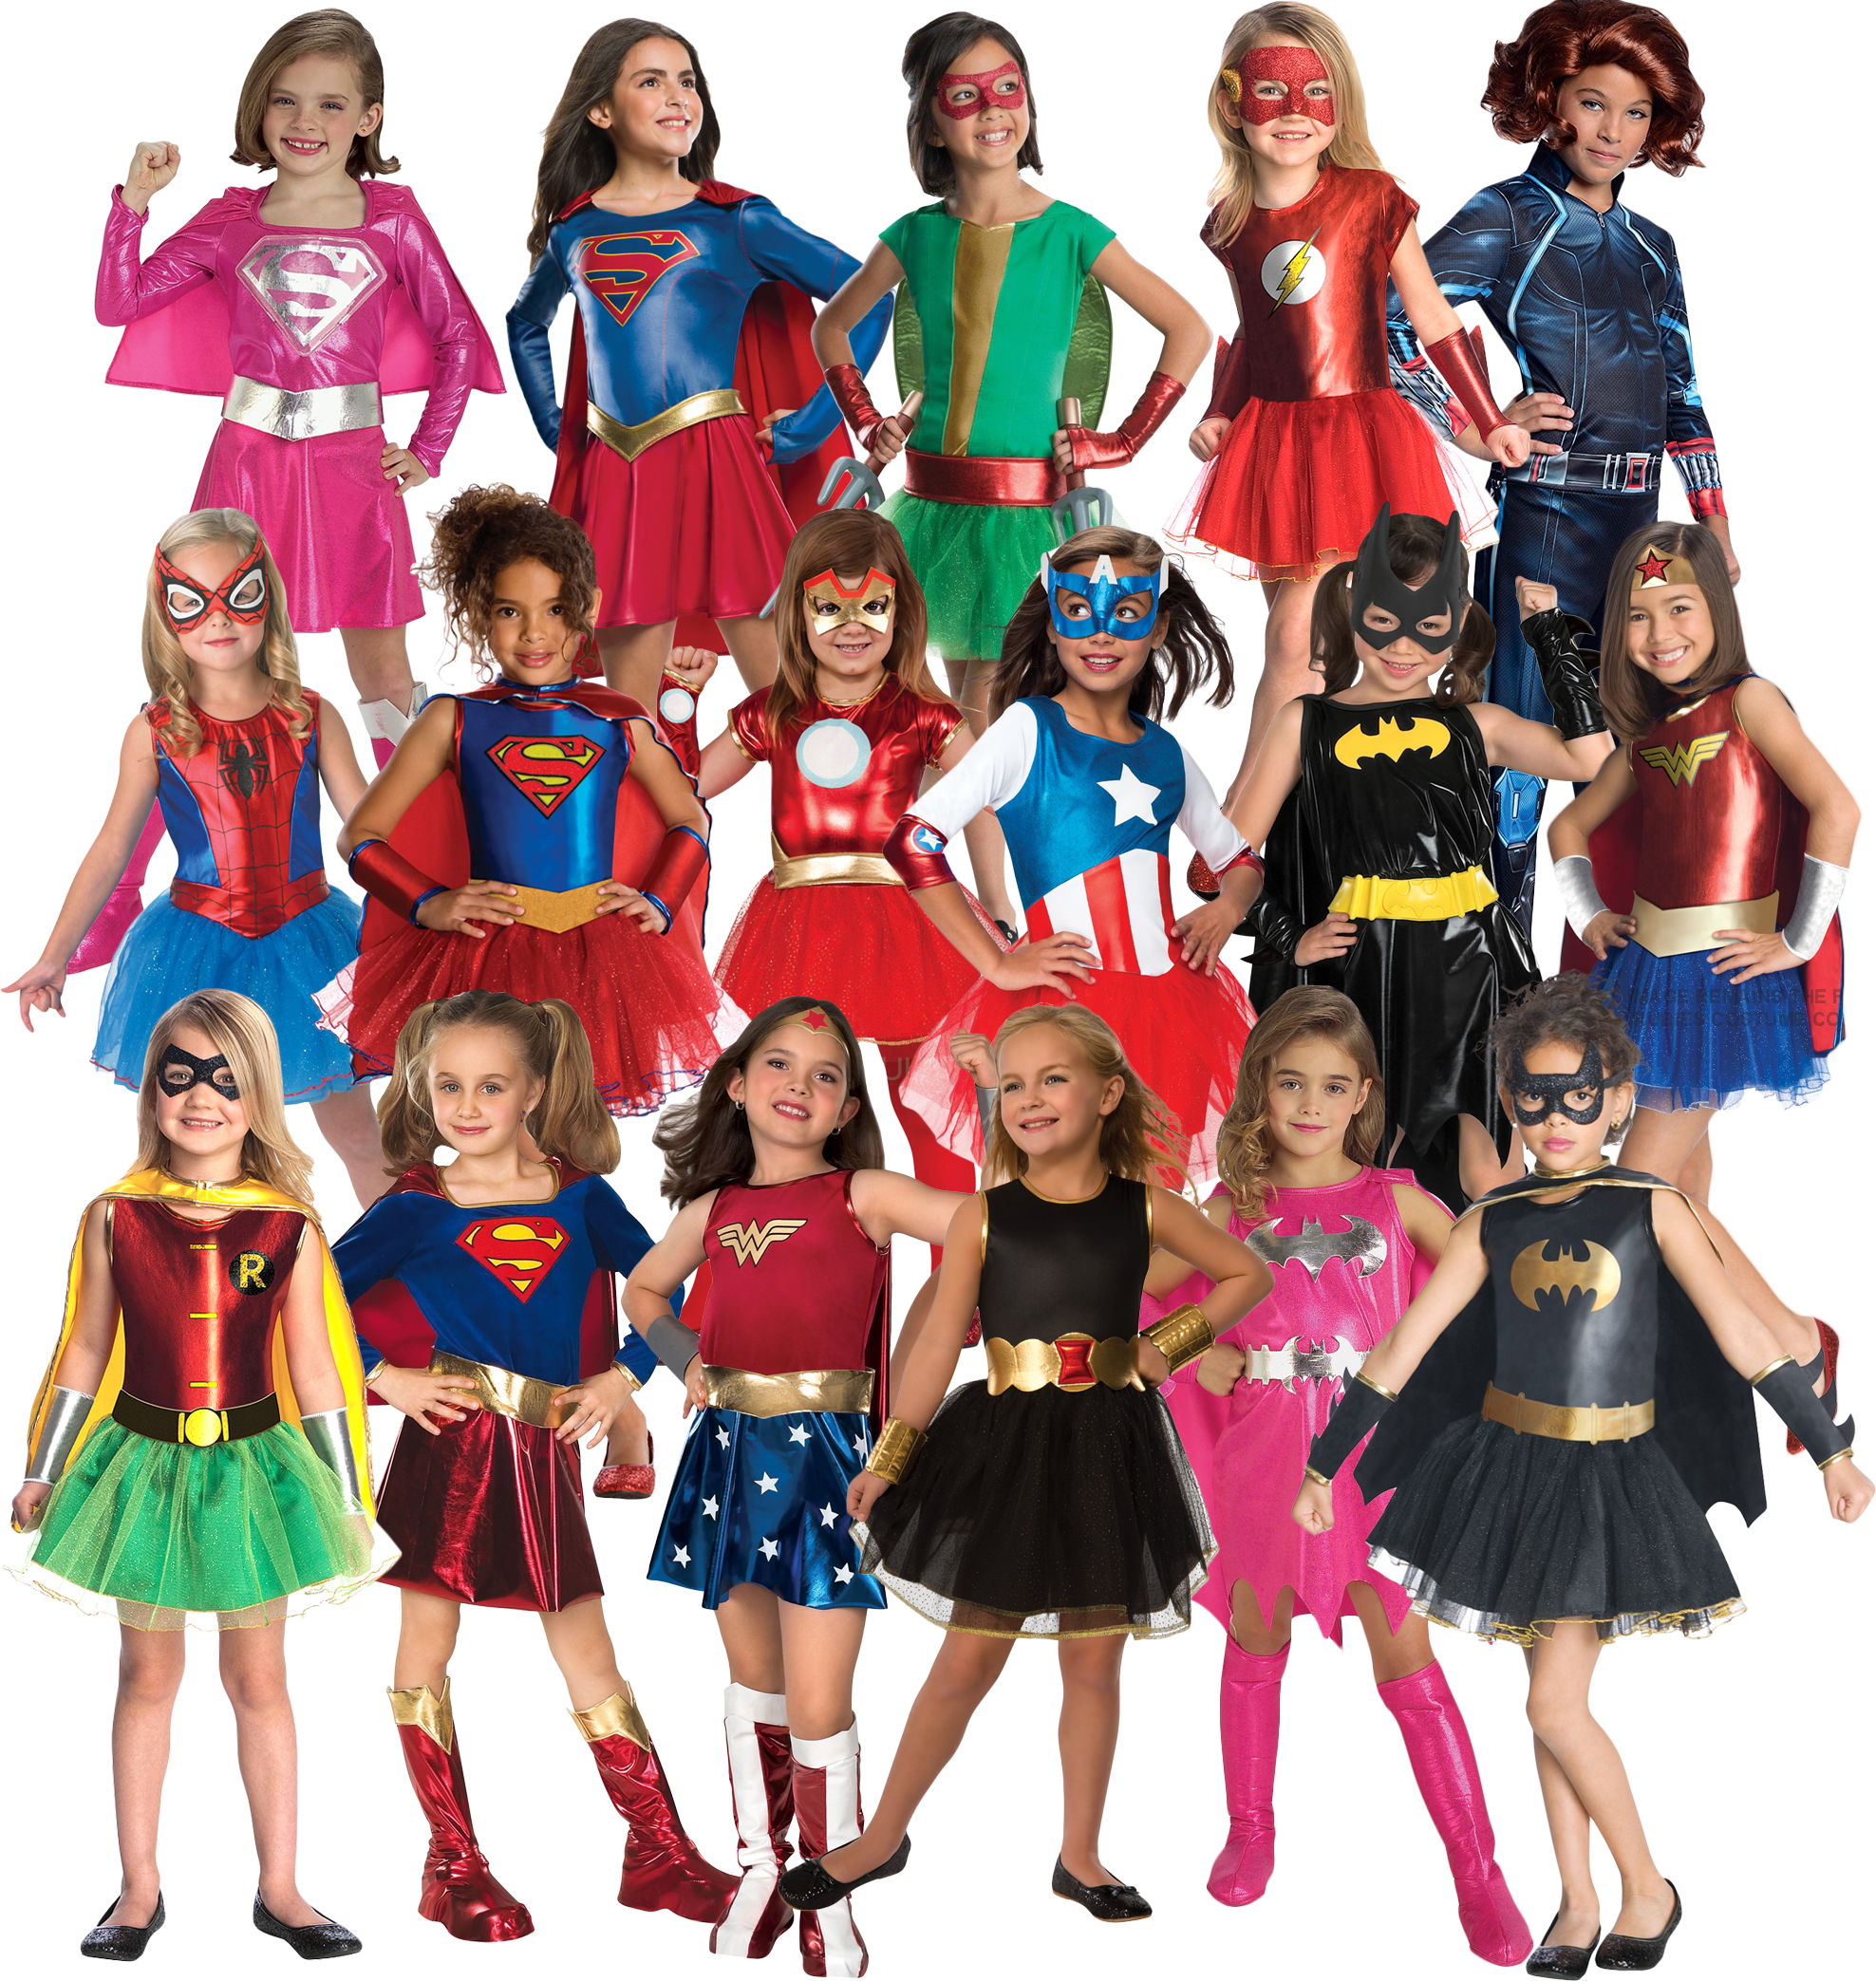 Superhero Kid Girls Supergirl Costume Fancy Dress Party Outfit Cover Xmas Gift c